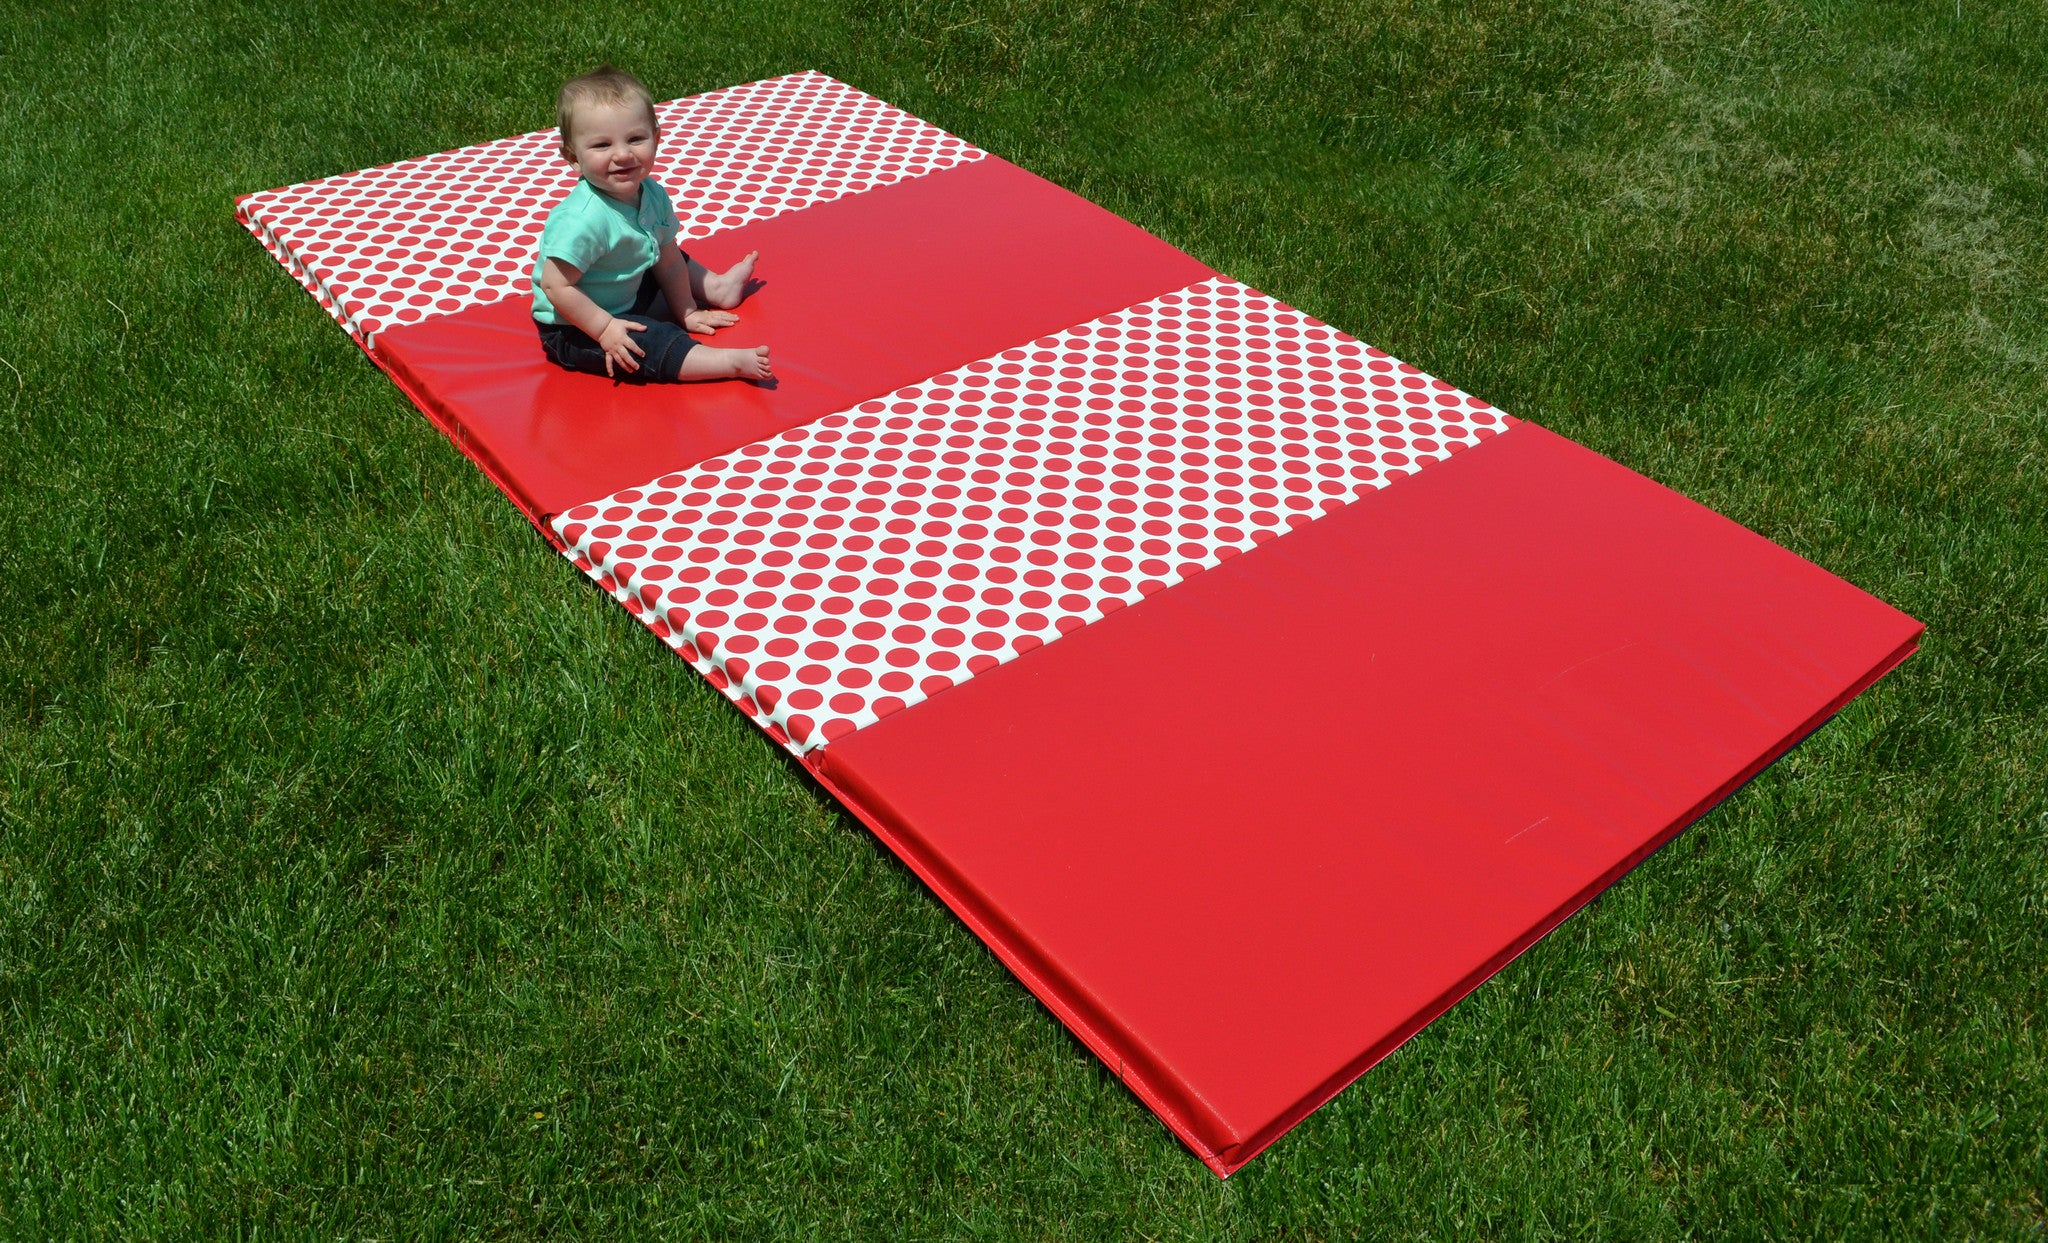 Build Your Own Polka Dot Mat  4' x 8'